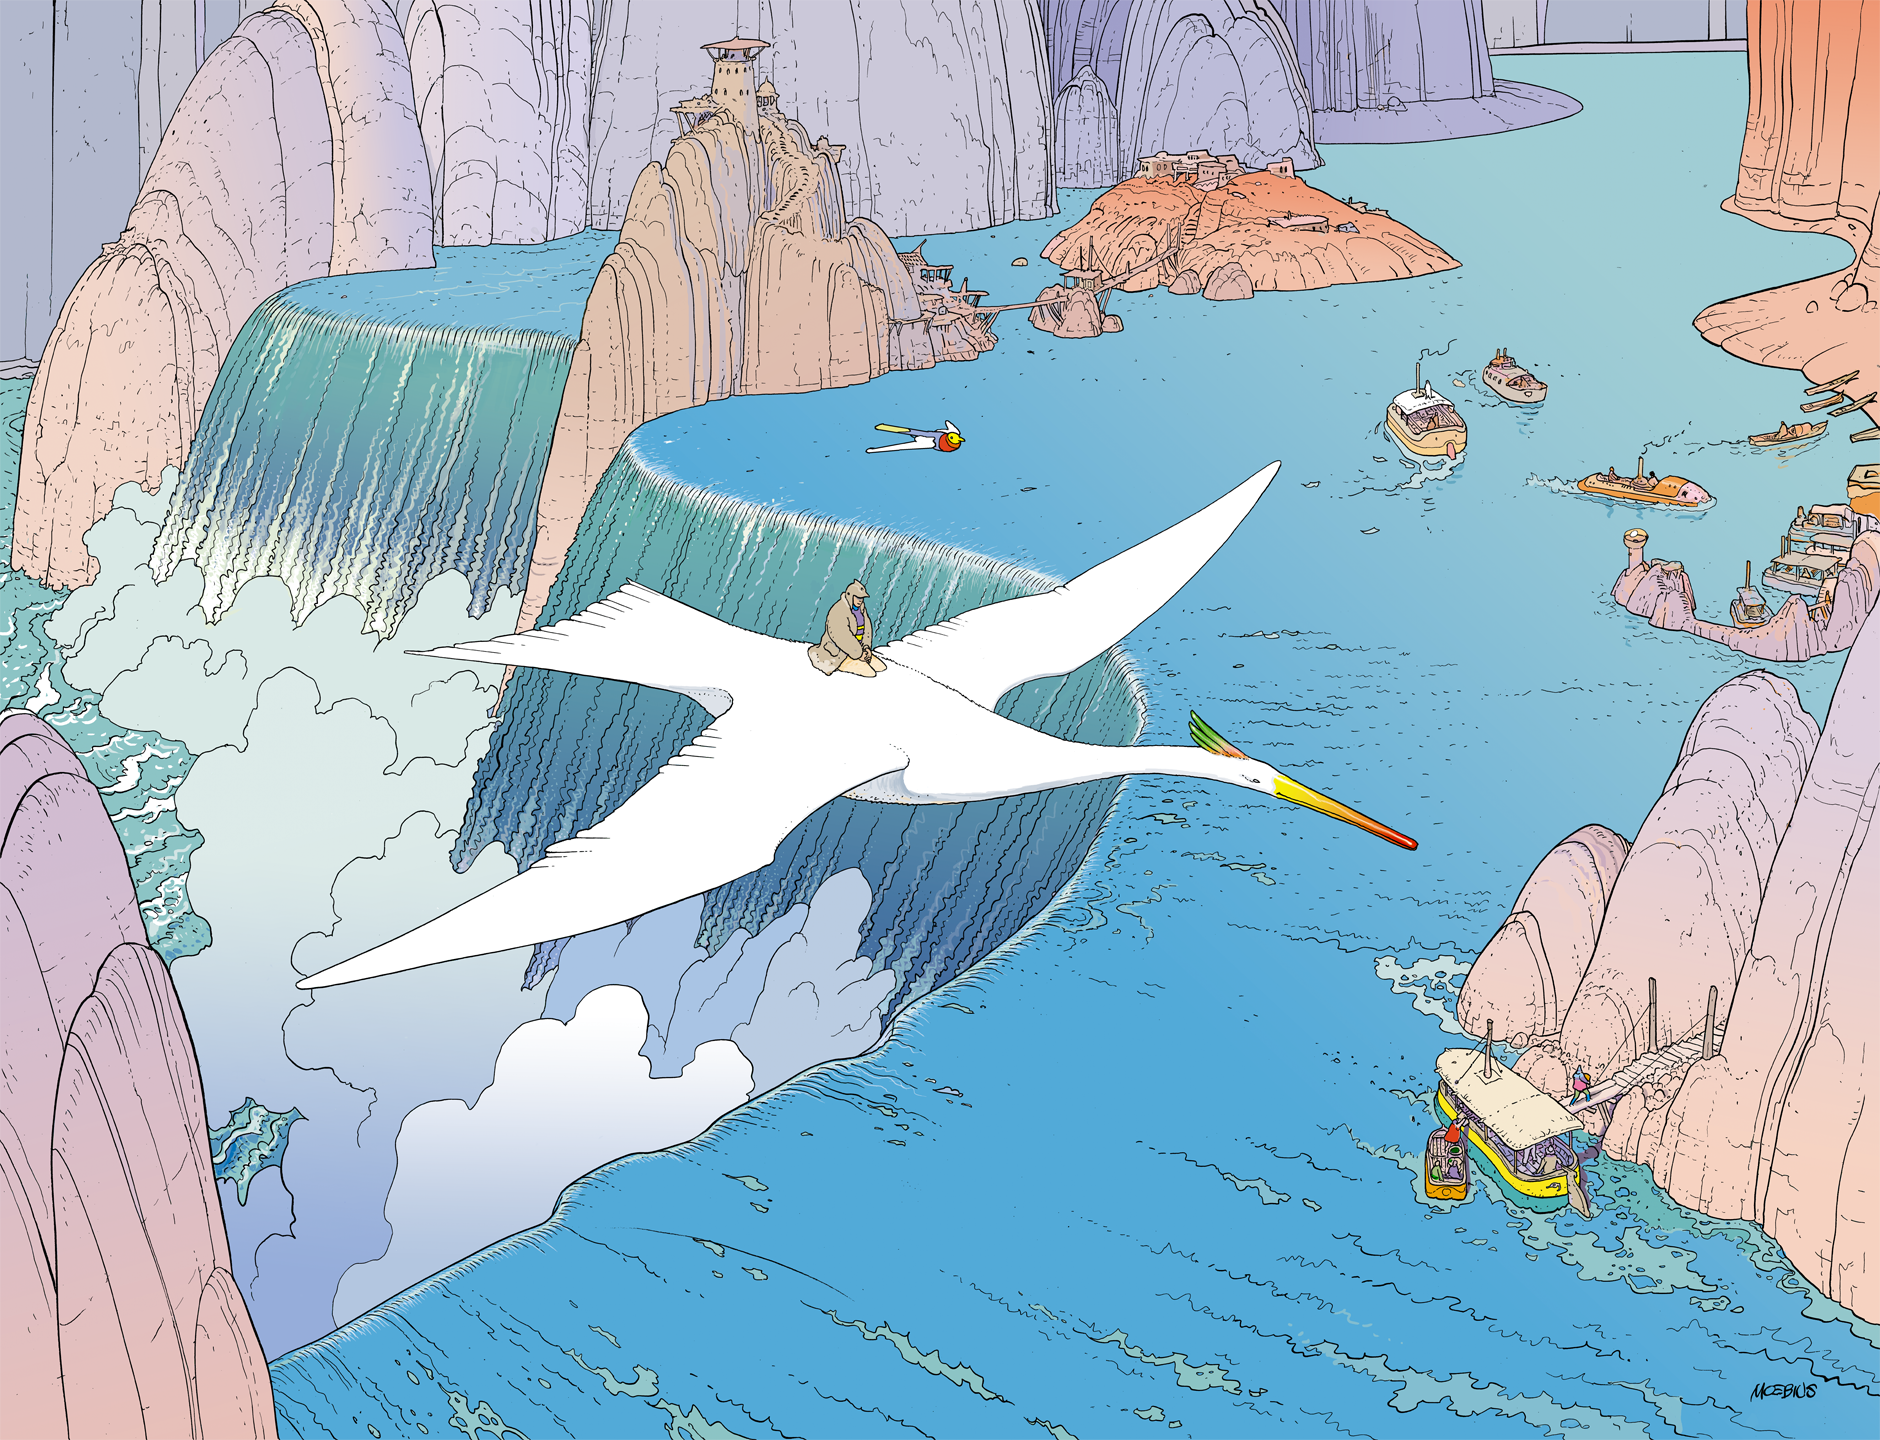 Inspired by Moebius: The wonders of the Journey